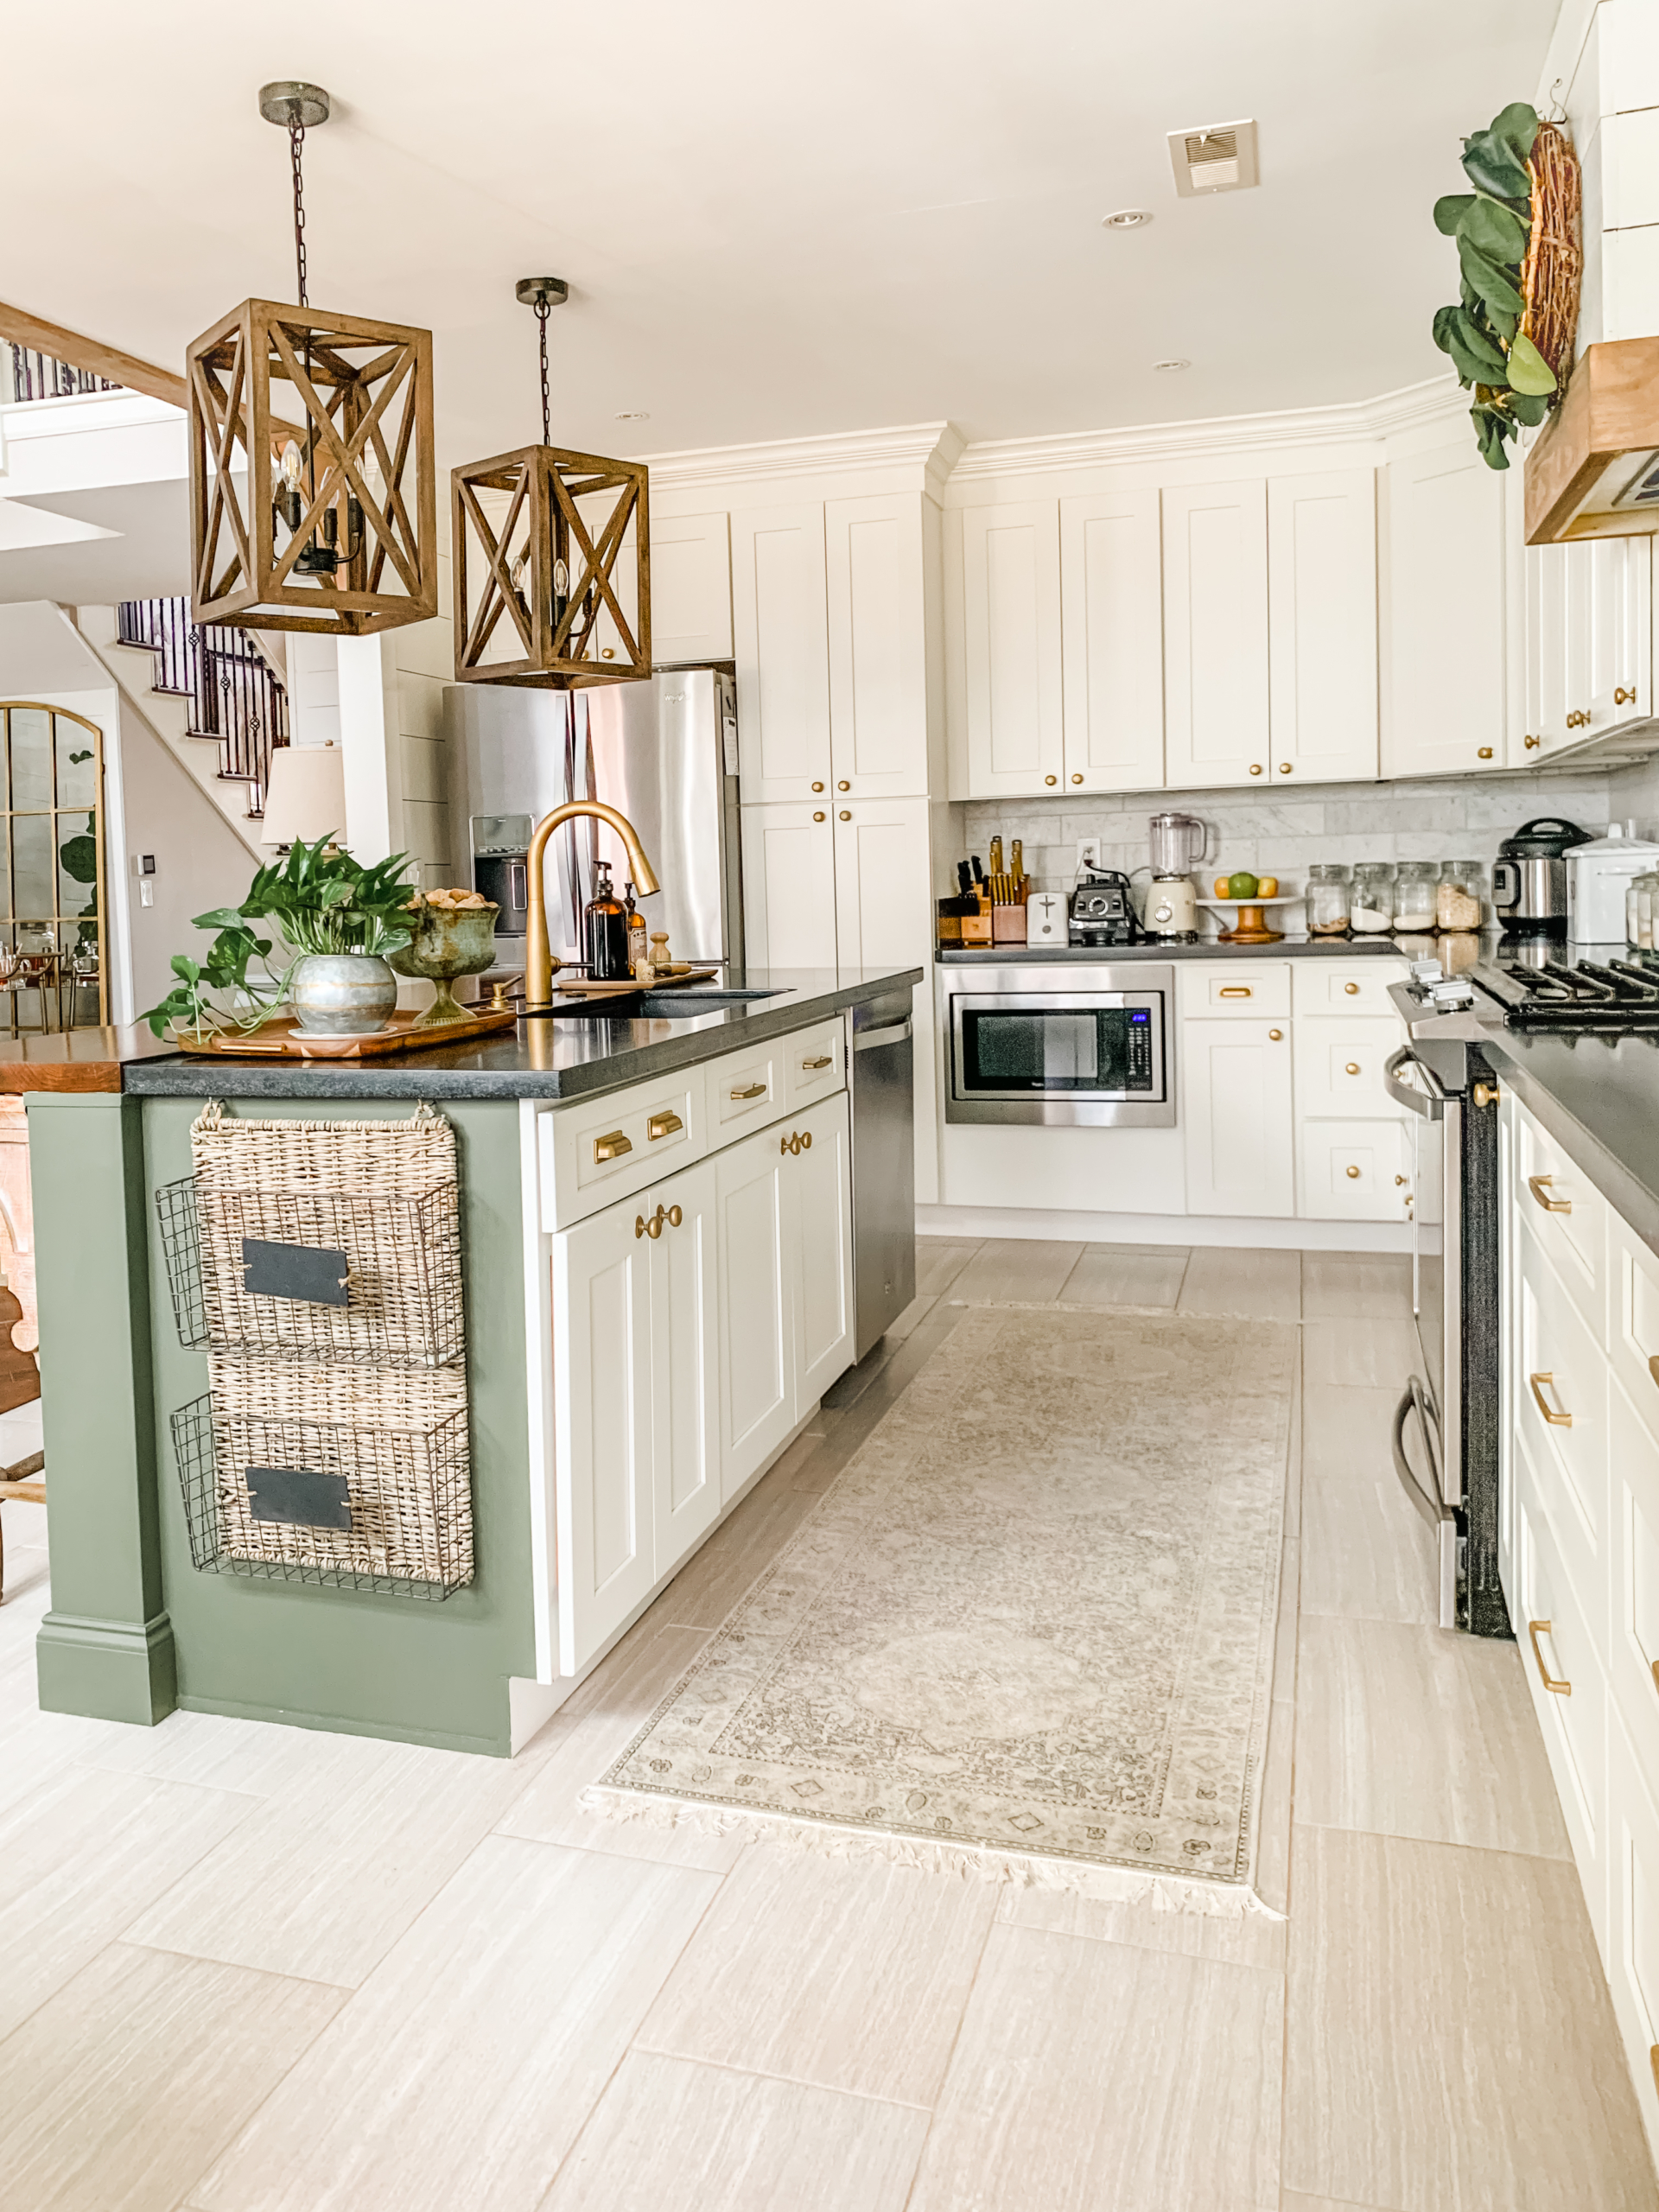 white cabinets with green kitchen island and wood accessories